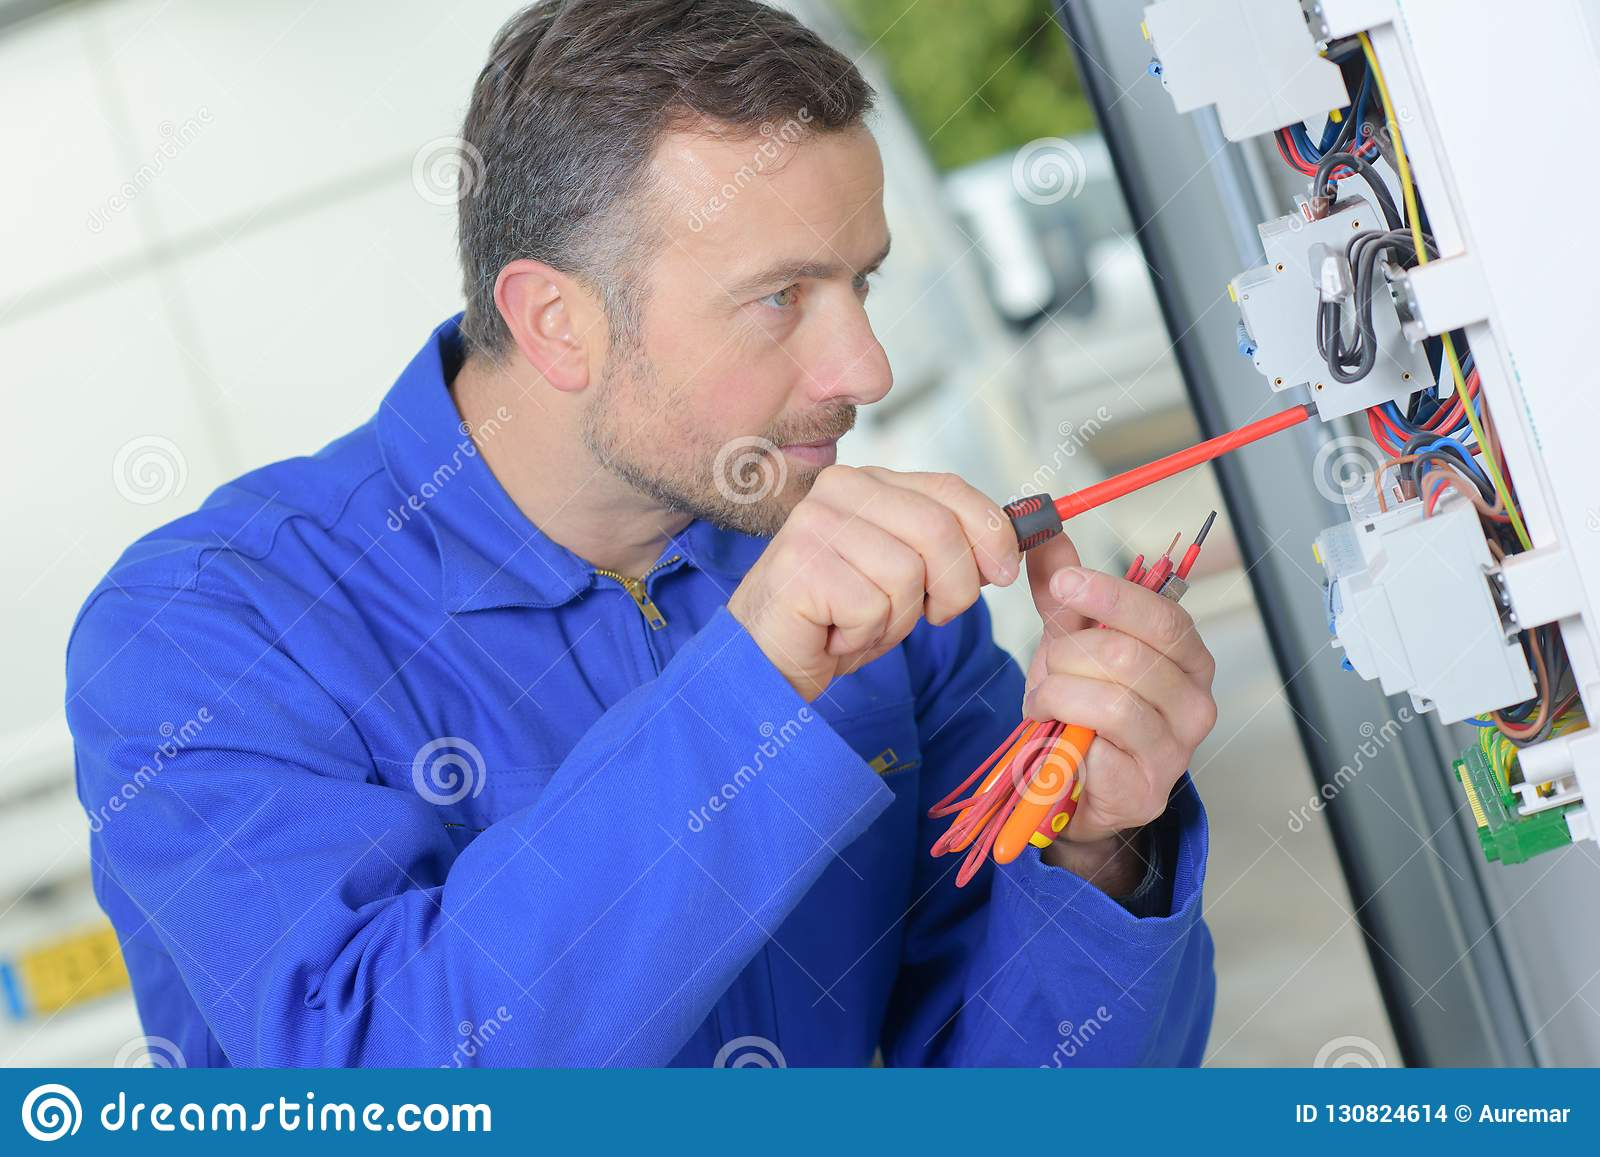 Replacing a faulty fuse